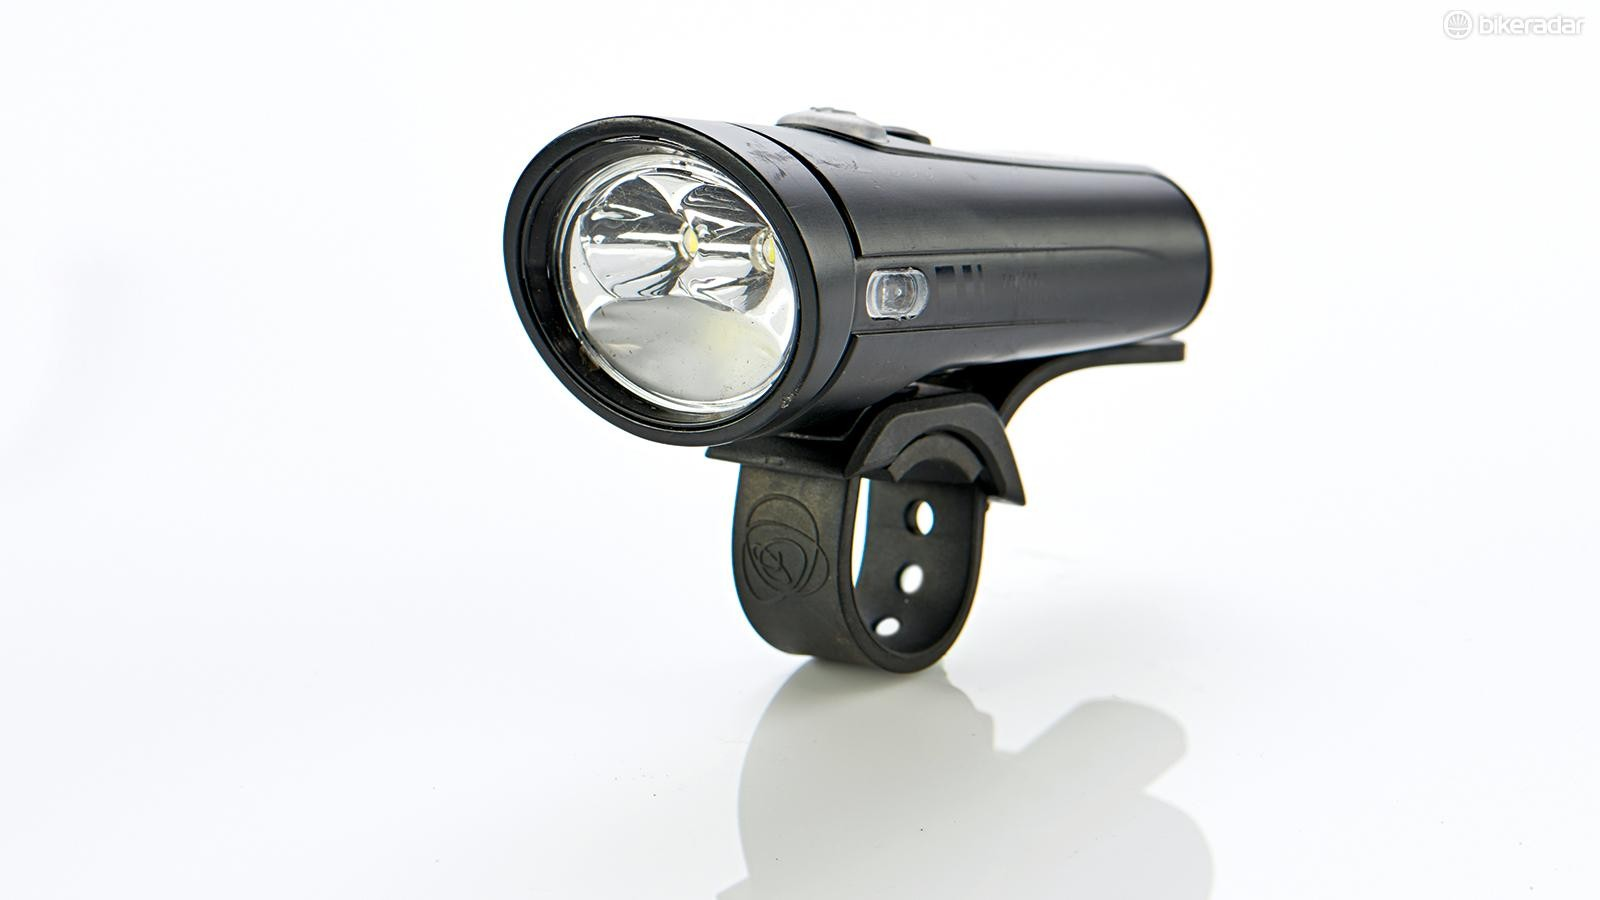 Light And Motion's Taz 1500 is a premium product, even if that's not immediately apparent